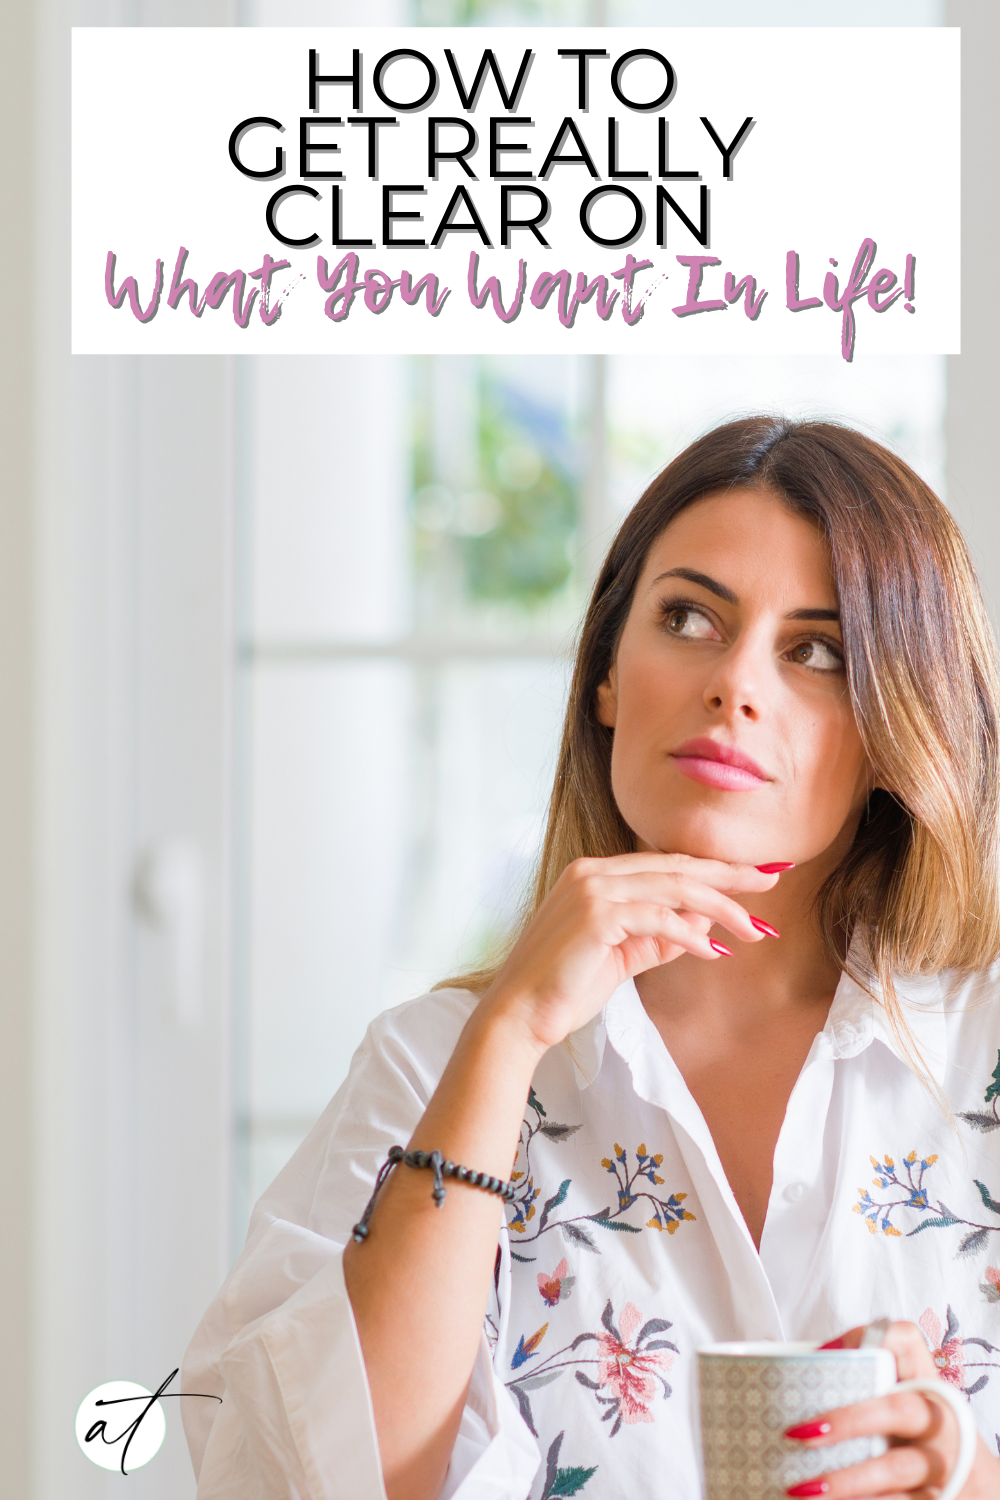 How To Get Really Clear On What You Want In Life! Simple questions you can ask yourself to help you design the life of your dreams.